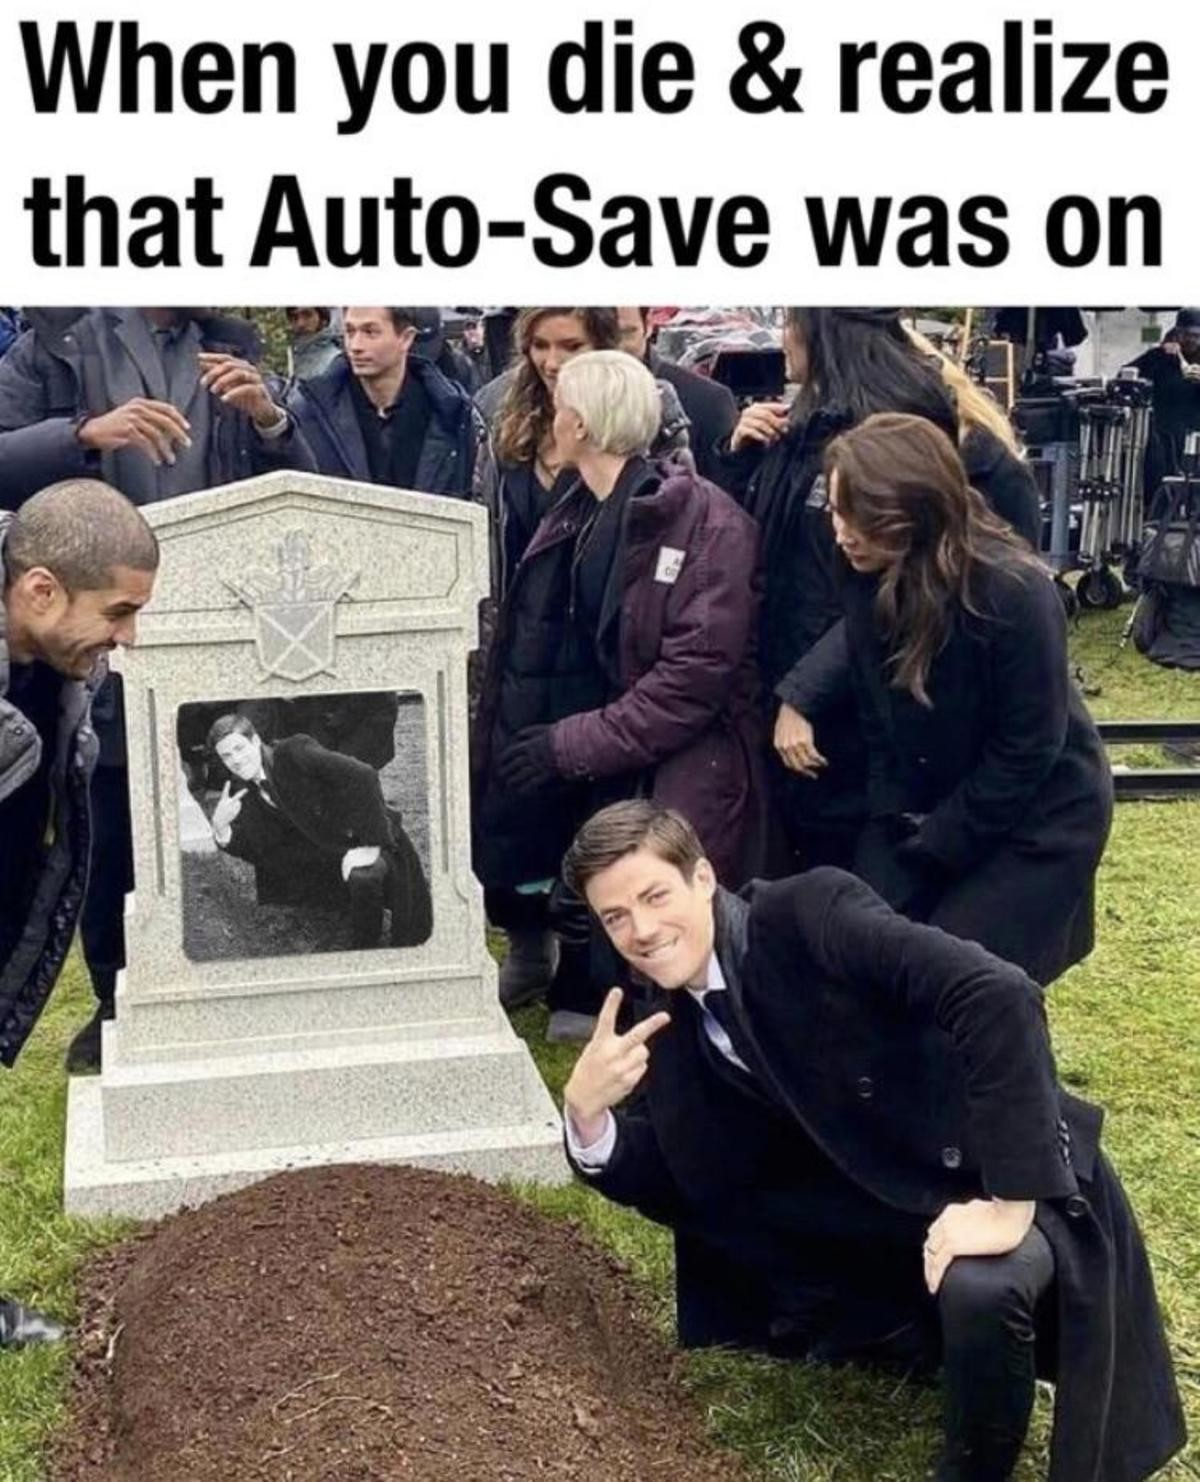 truuu 😂😂😂. .. For those unaware, you can see tracks for a camera dolly. And a of film equipment. He's not just posing next to a fresh grave.Comment edited at .